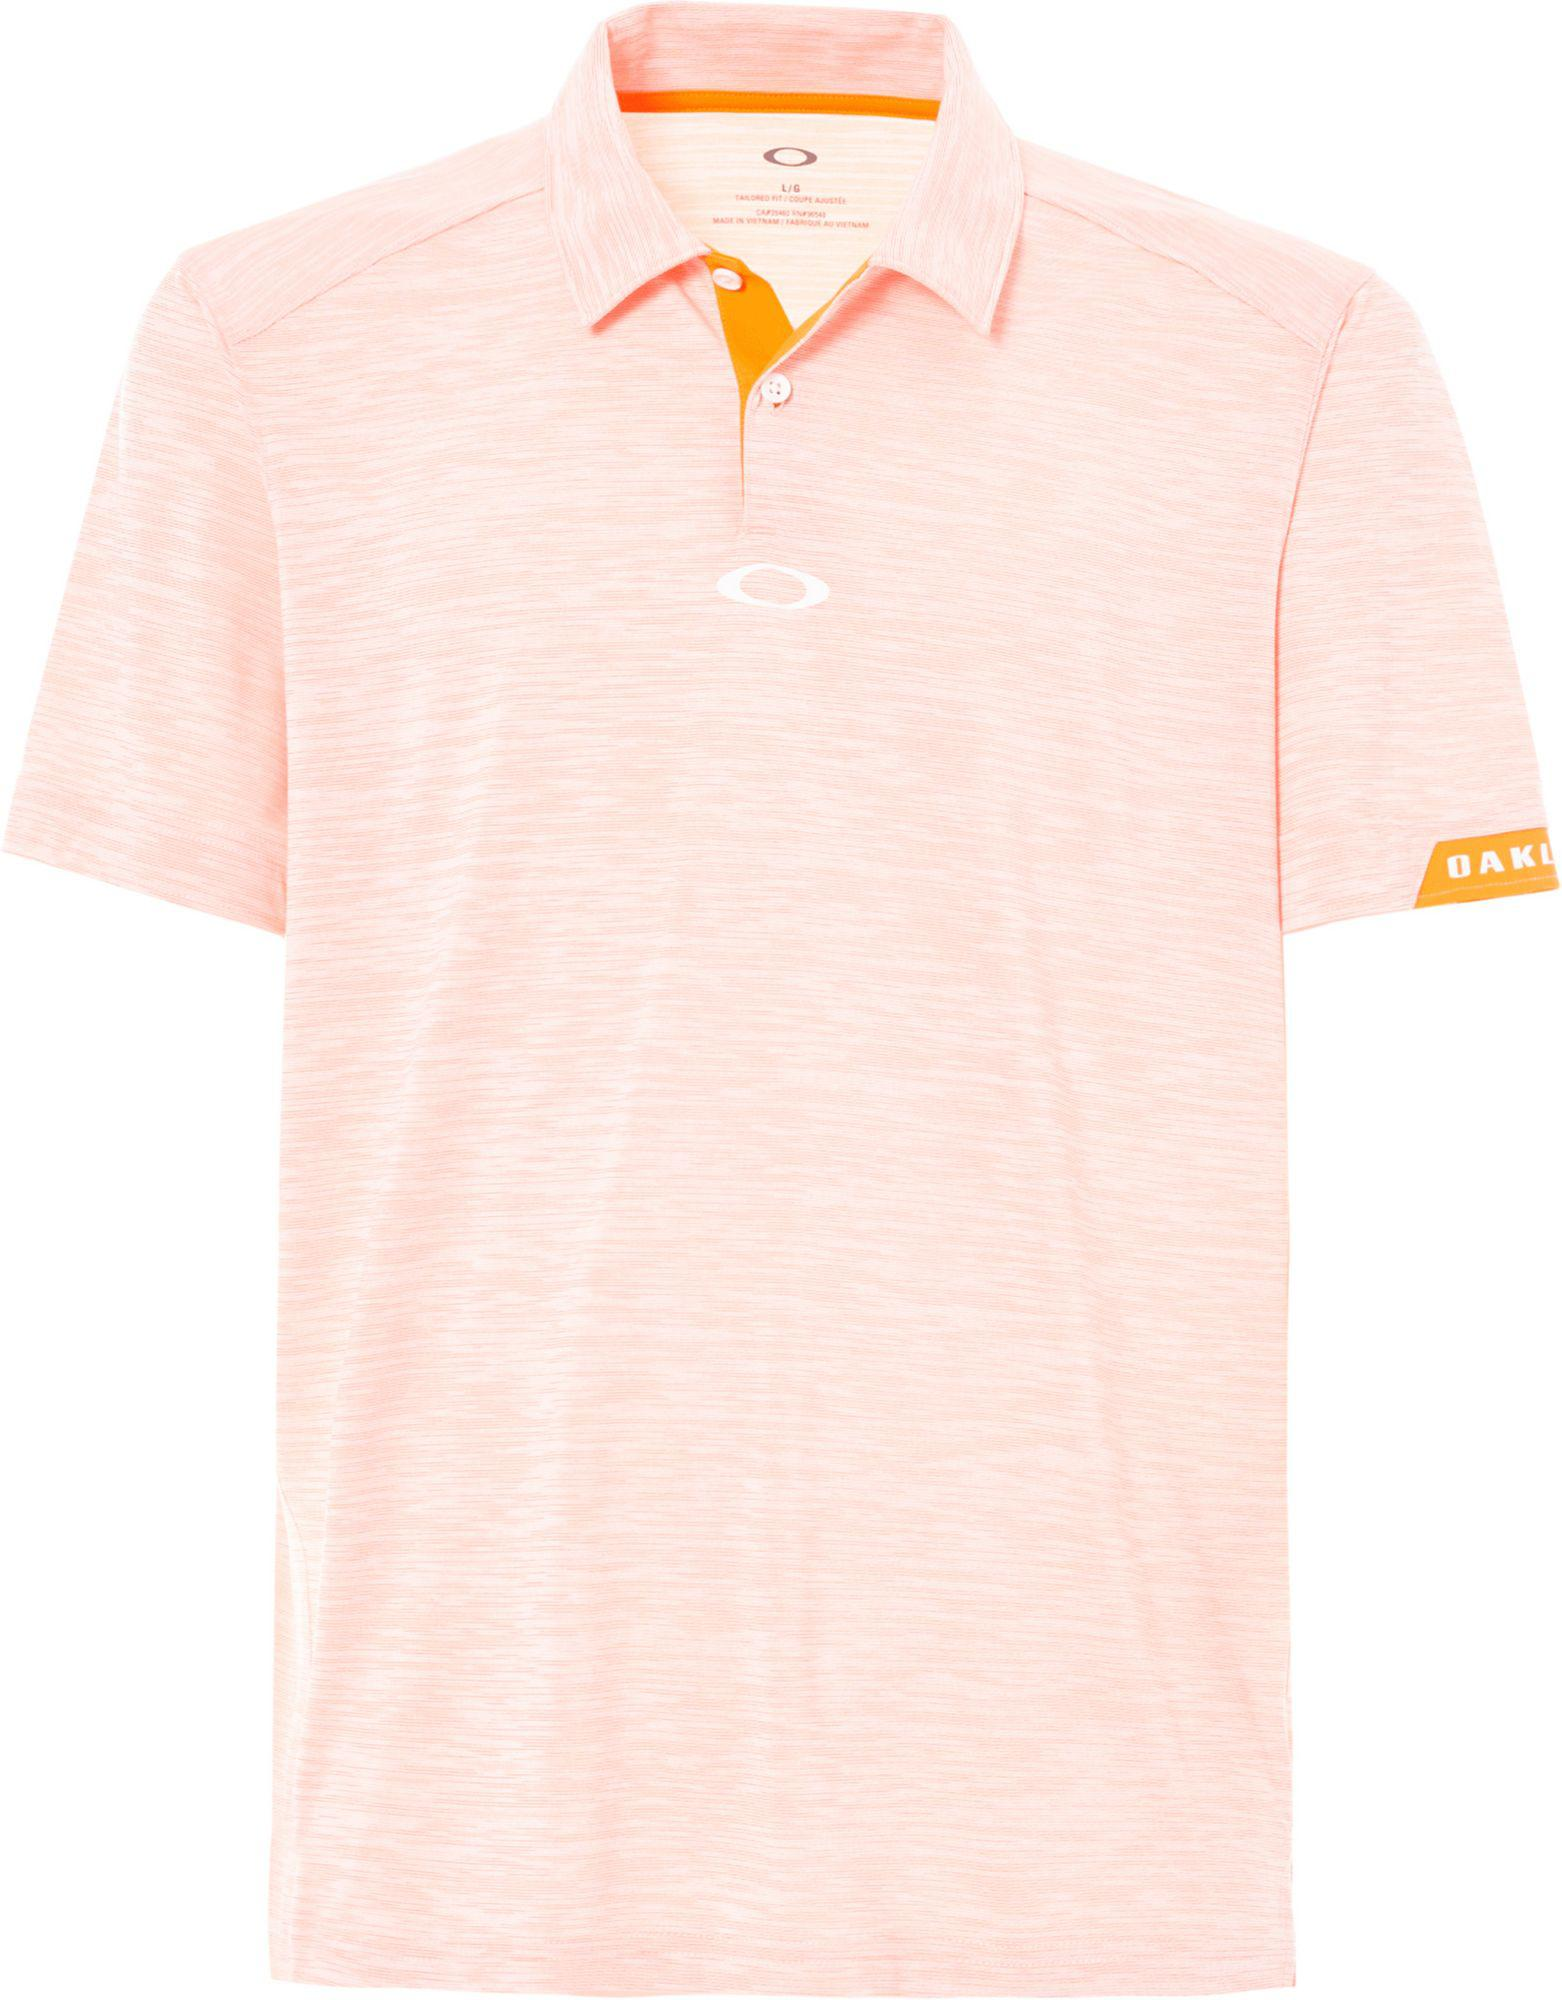 2e964d1adf Lyst - Oakley Gravity Golf Polo in Pink for Men